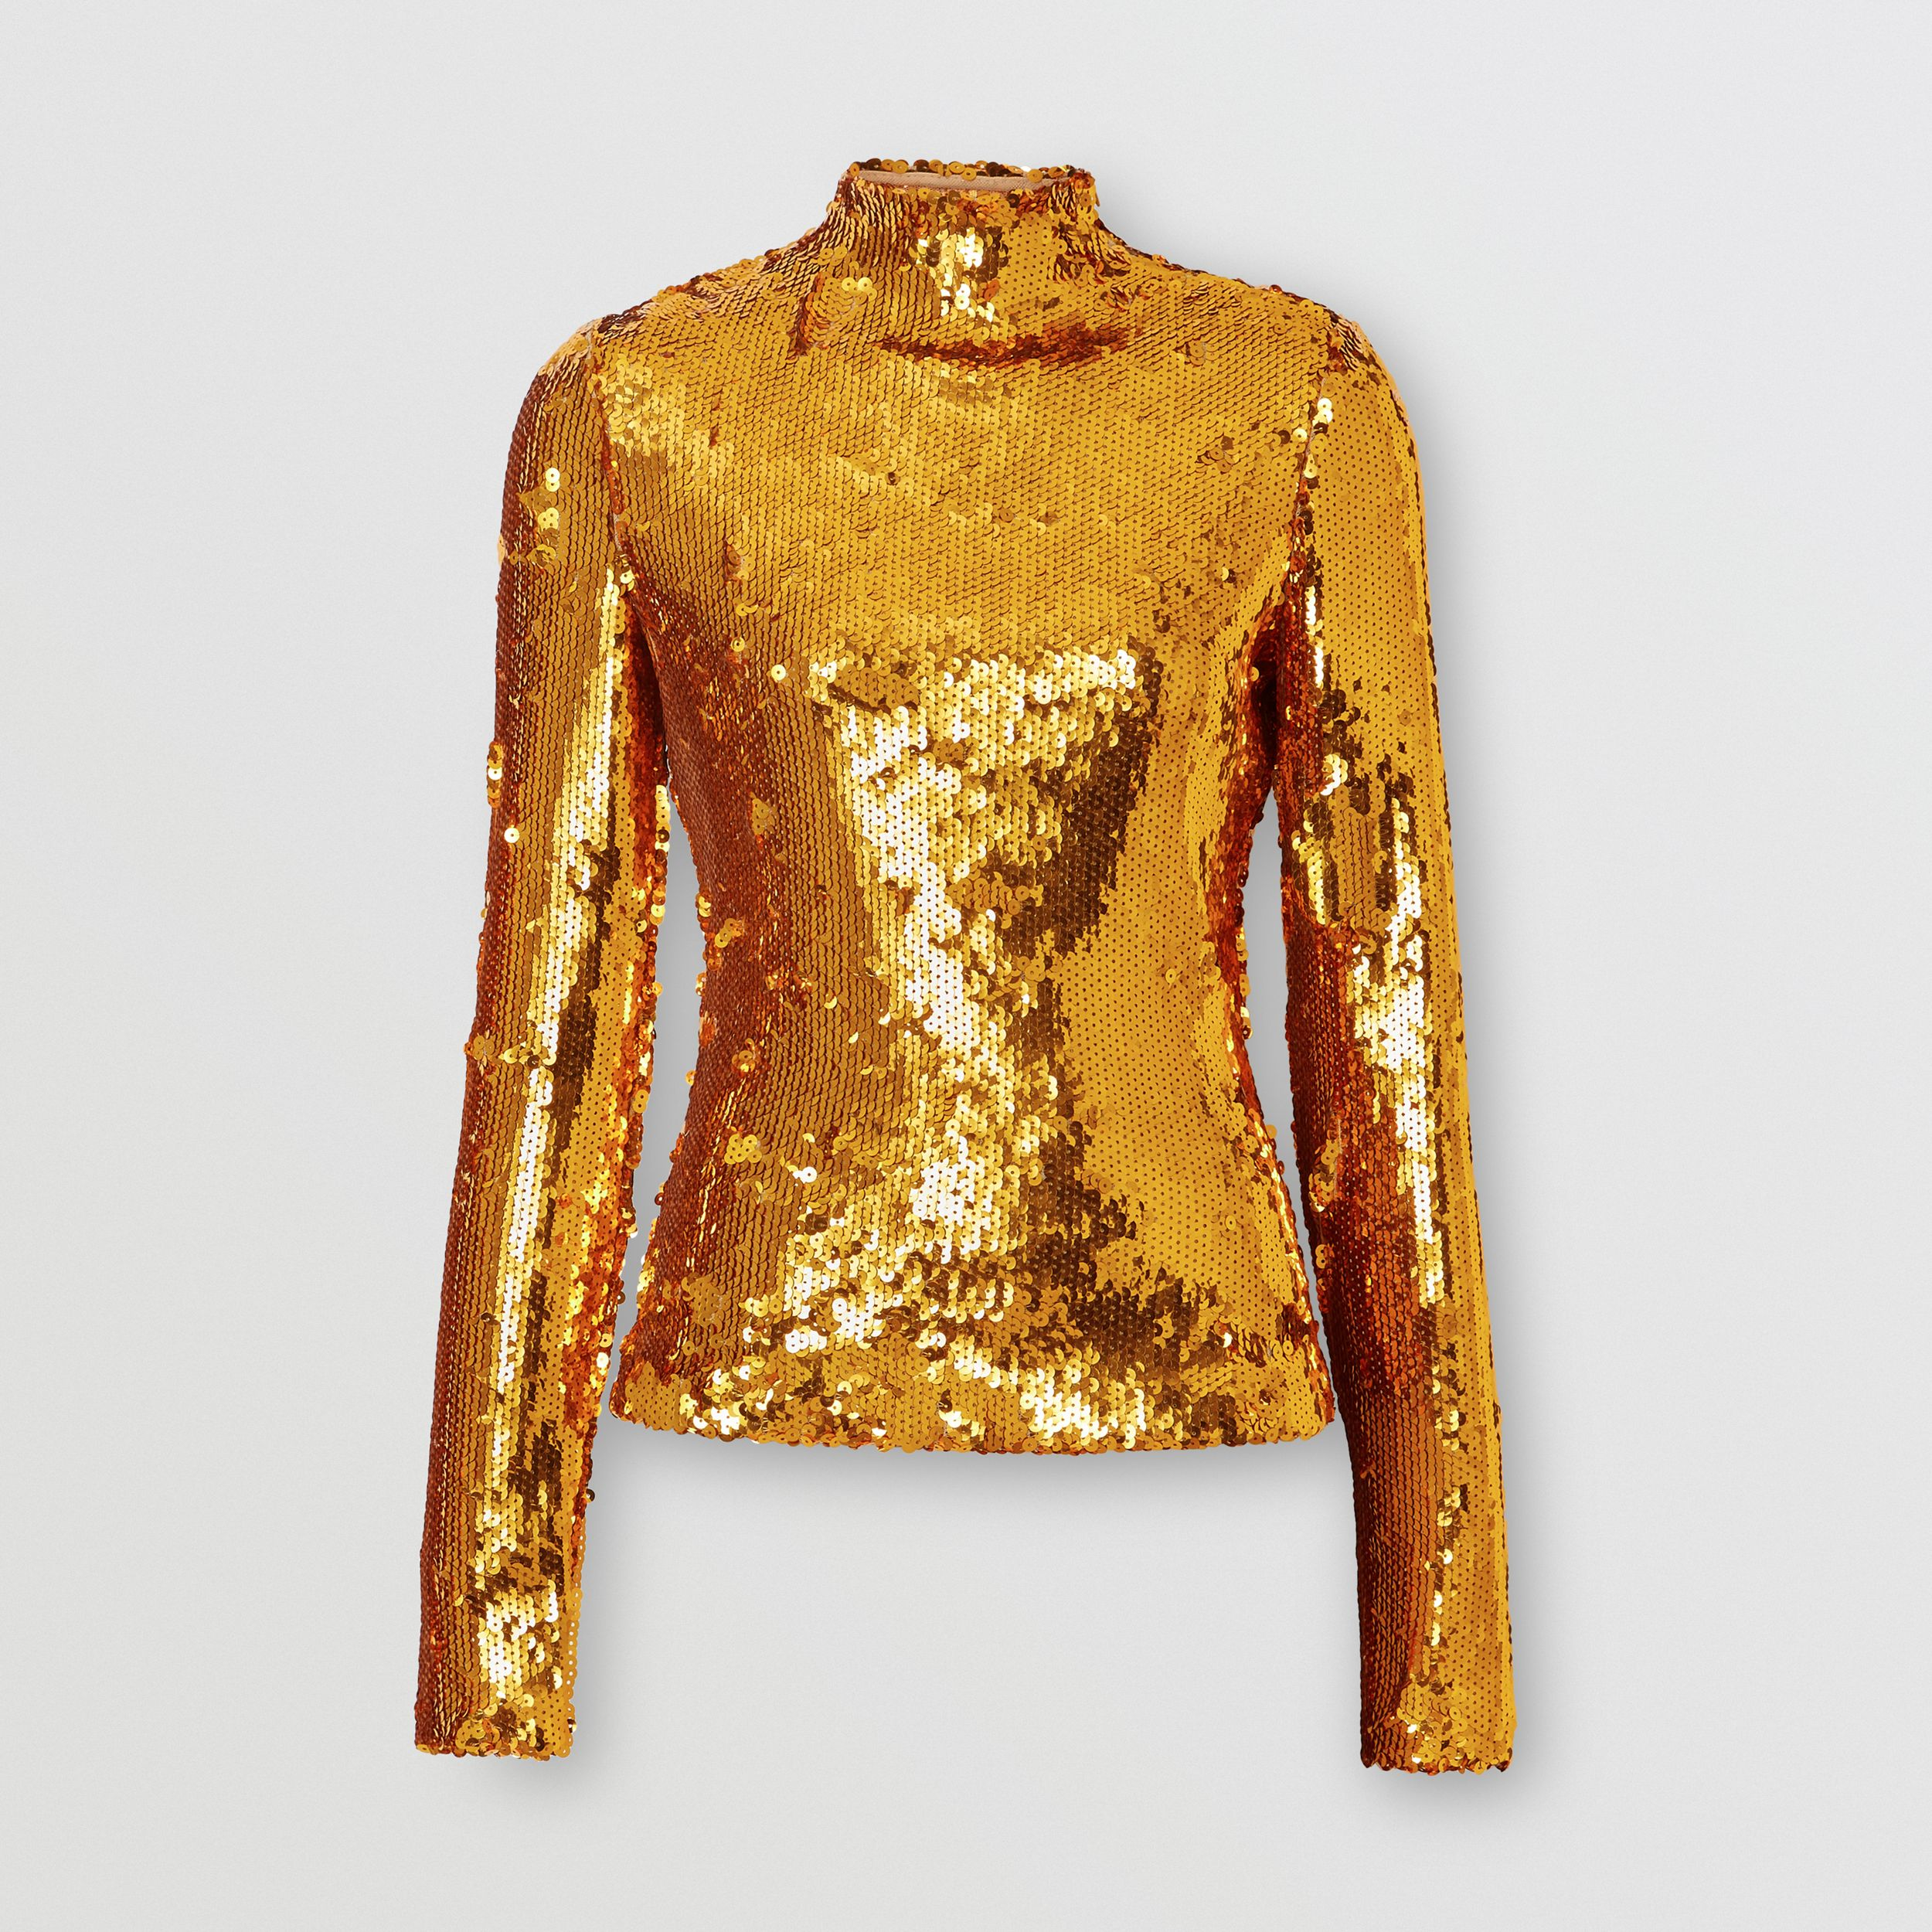 Sequinned Turtleneck Top in Gold - Women | Burberry - 4